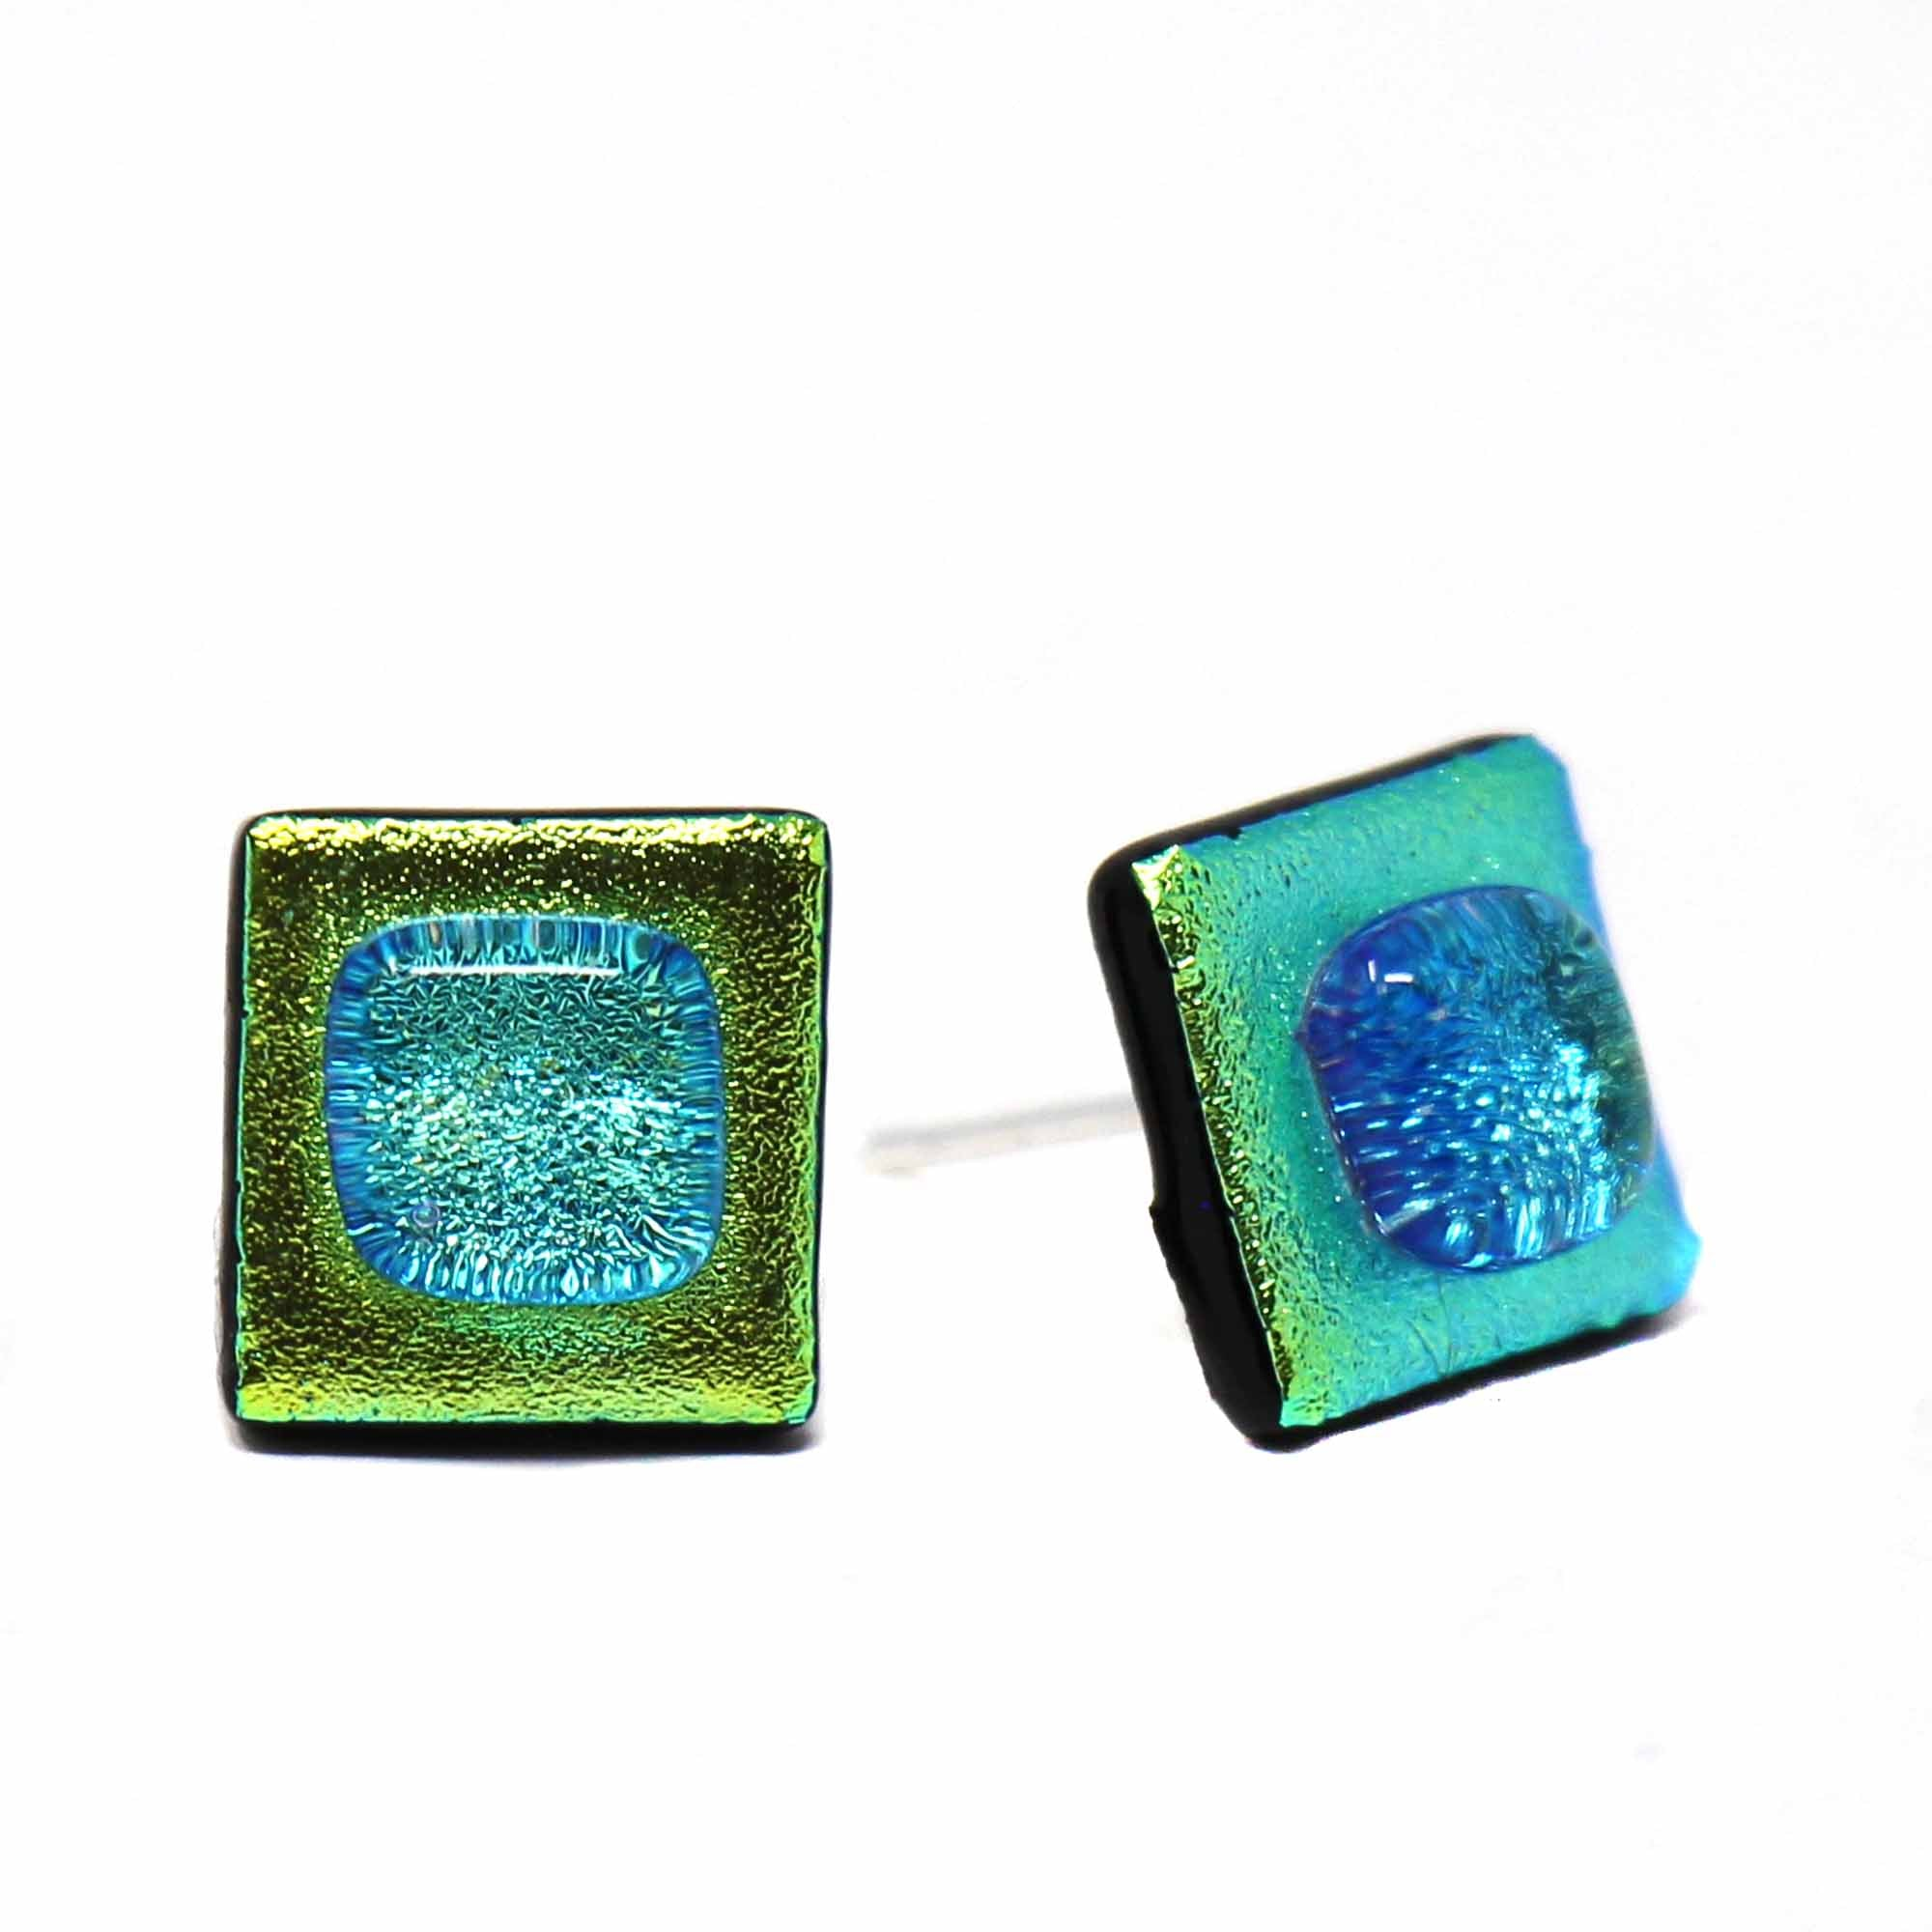 Square Glass Stud Earrings, Limey - Pack of 3